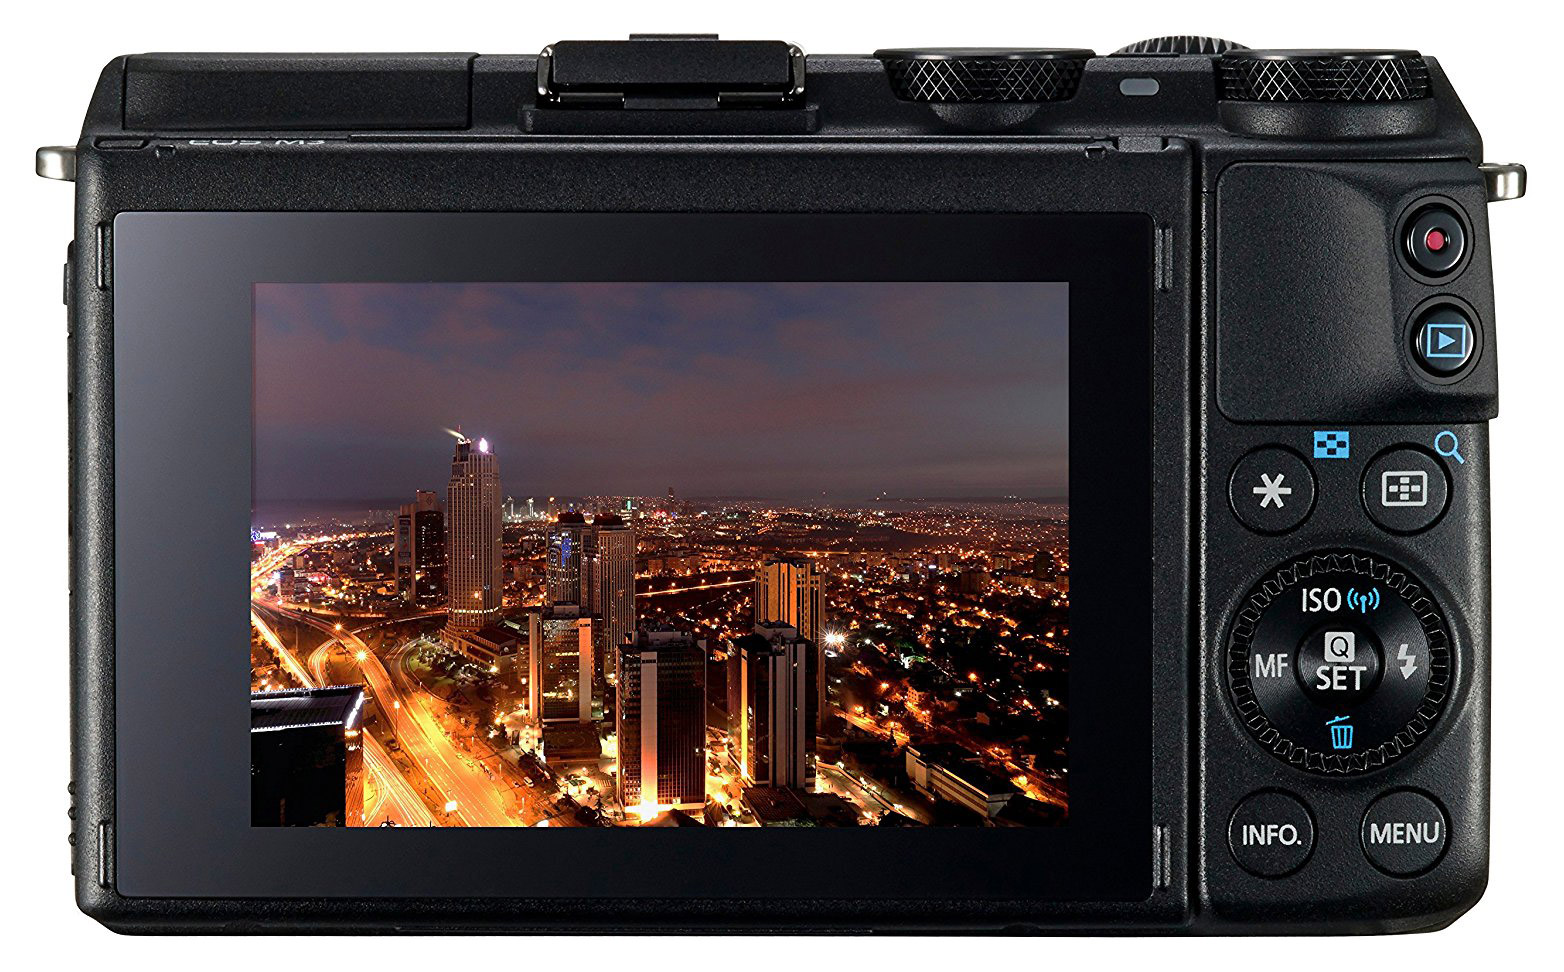 EOS M3 display and touch screen